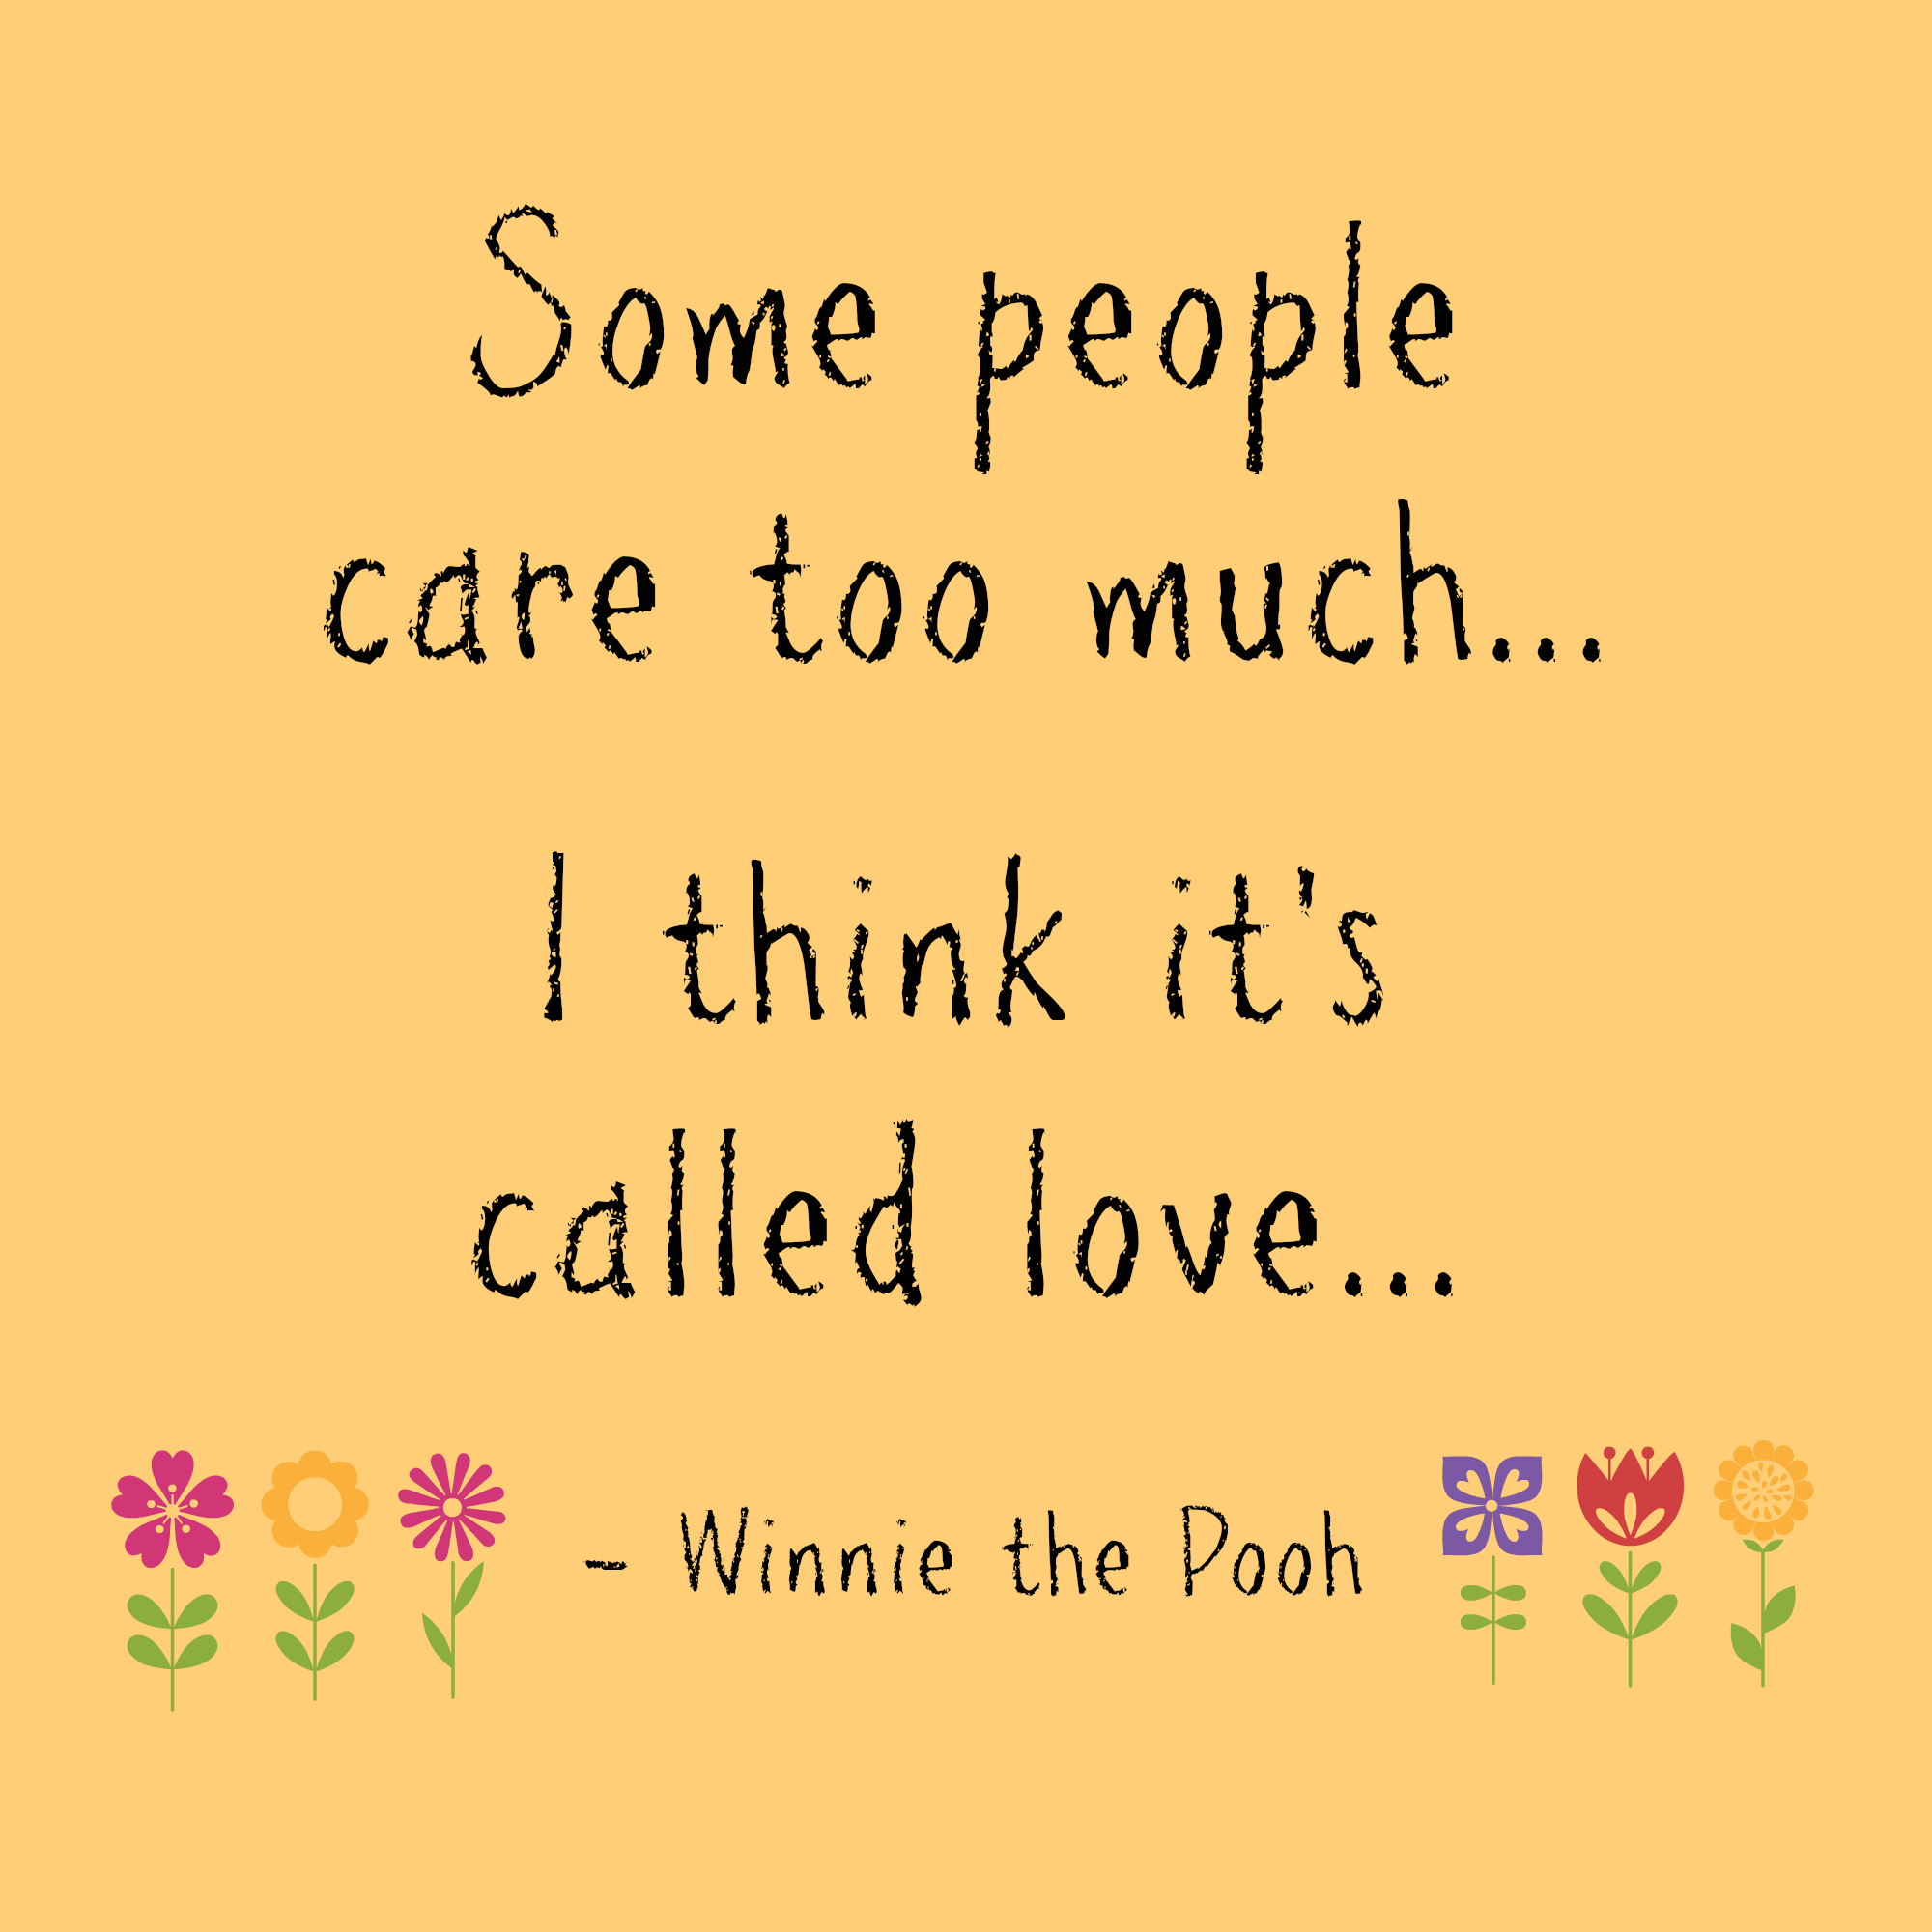 Pooh Quotes About Friendship: Winnie The Pooh Quotes About Friendship. QuotesGram